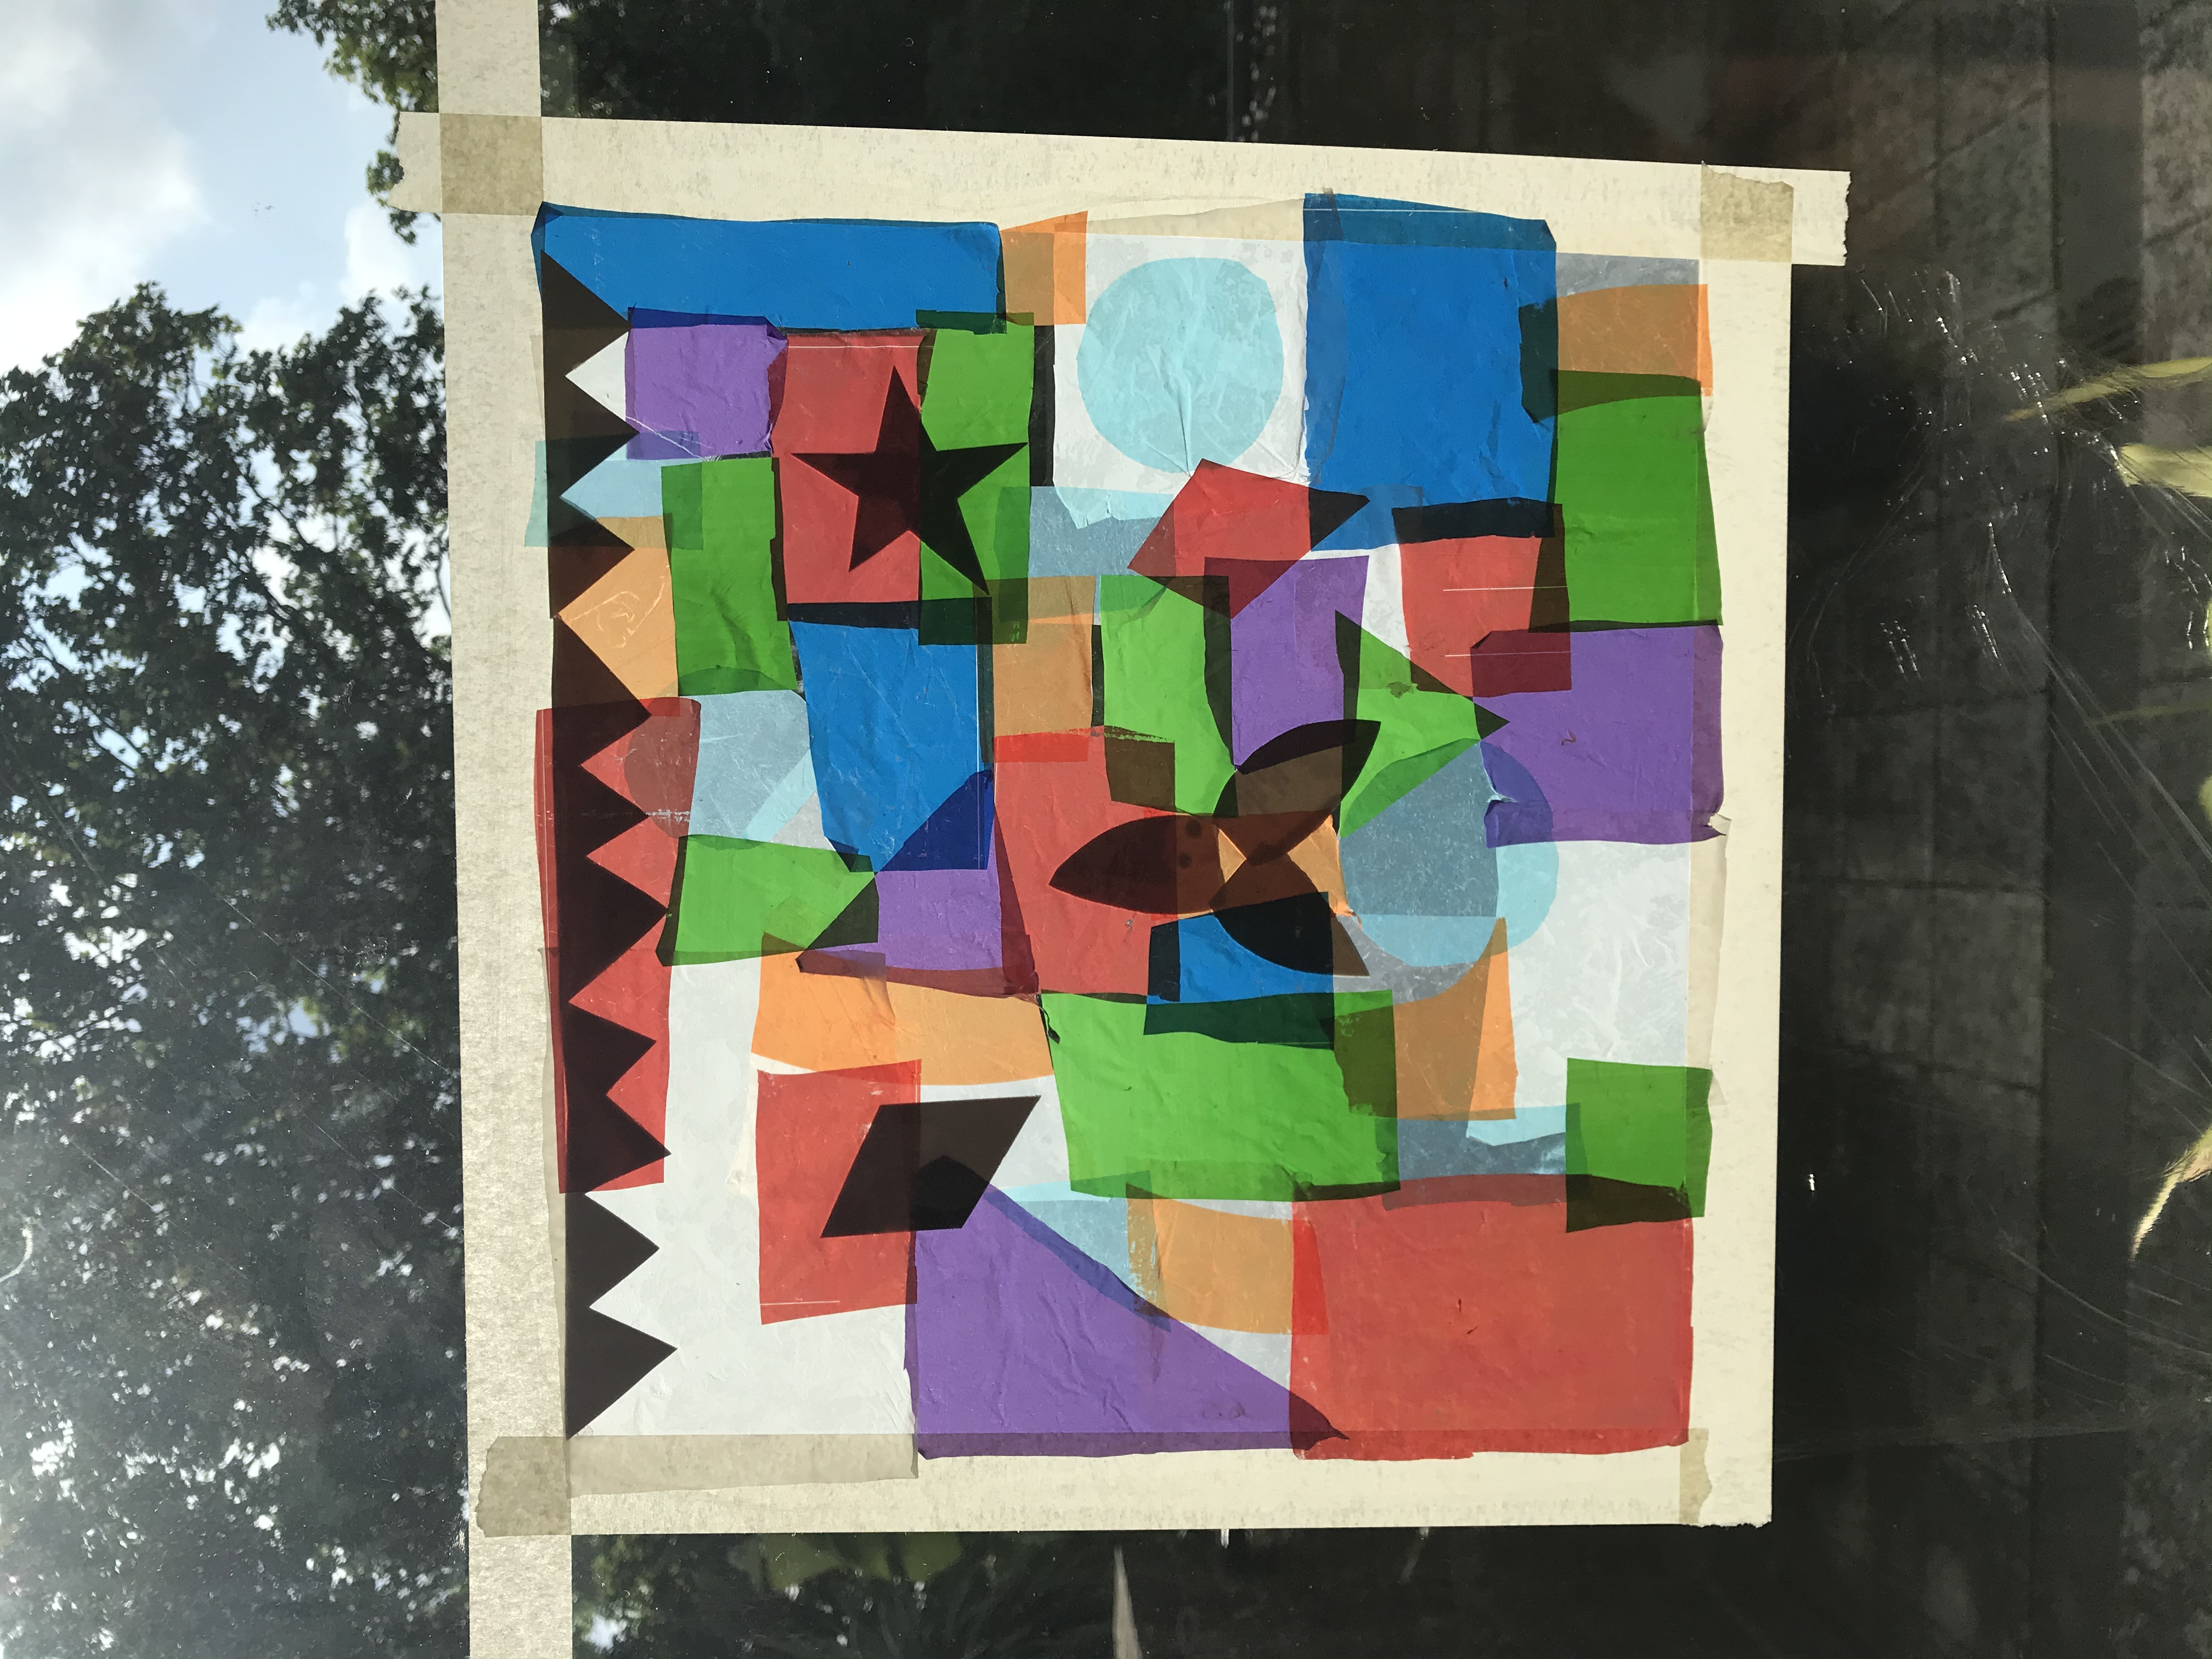 Stained glass window craft using plastic bags